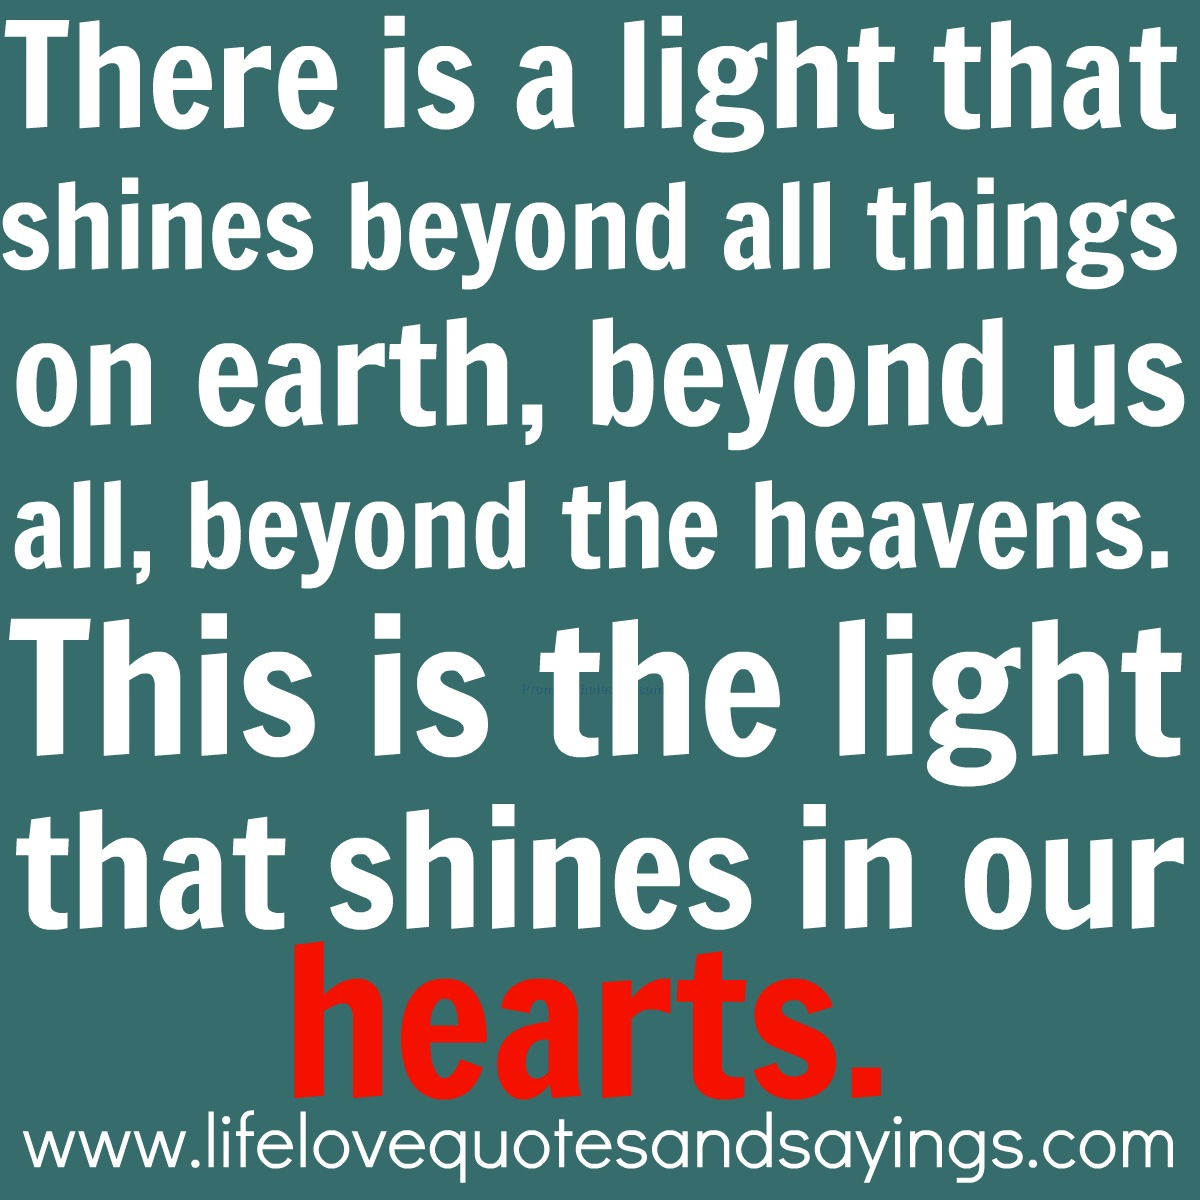 Quotes Anout Love: Quotes About Love And Light. QuotesGram